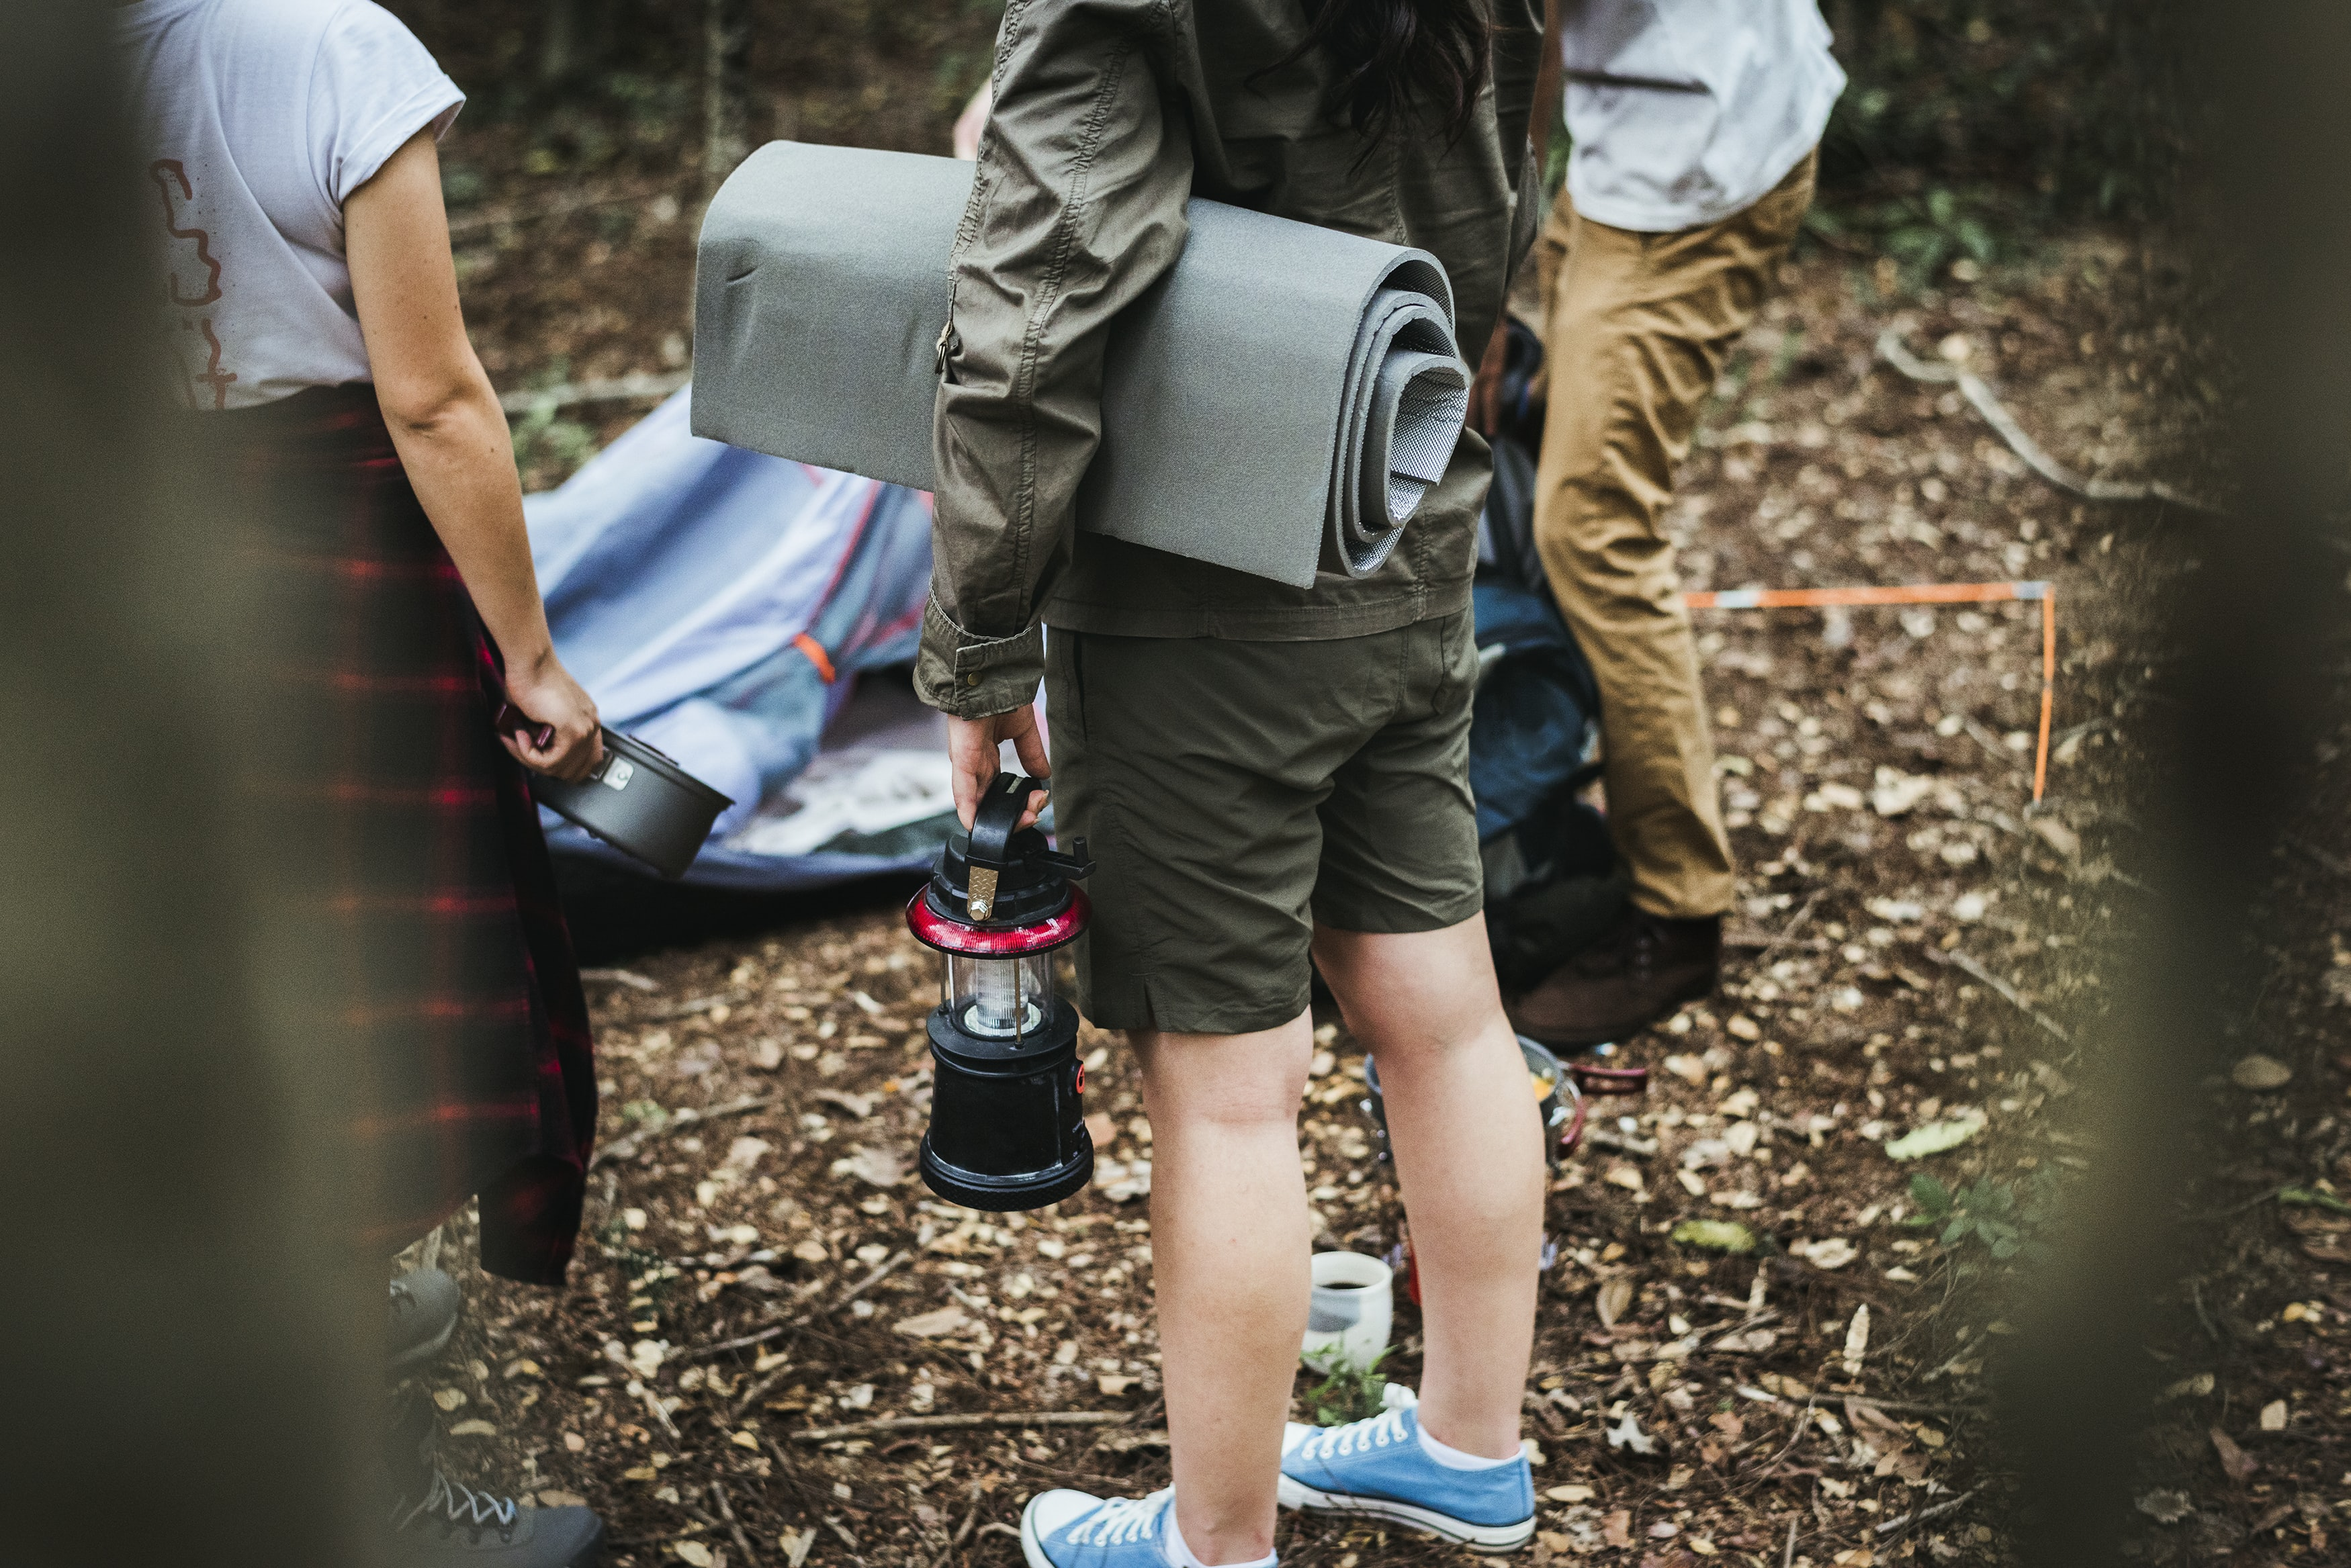 person holding black and red LED camping lamp